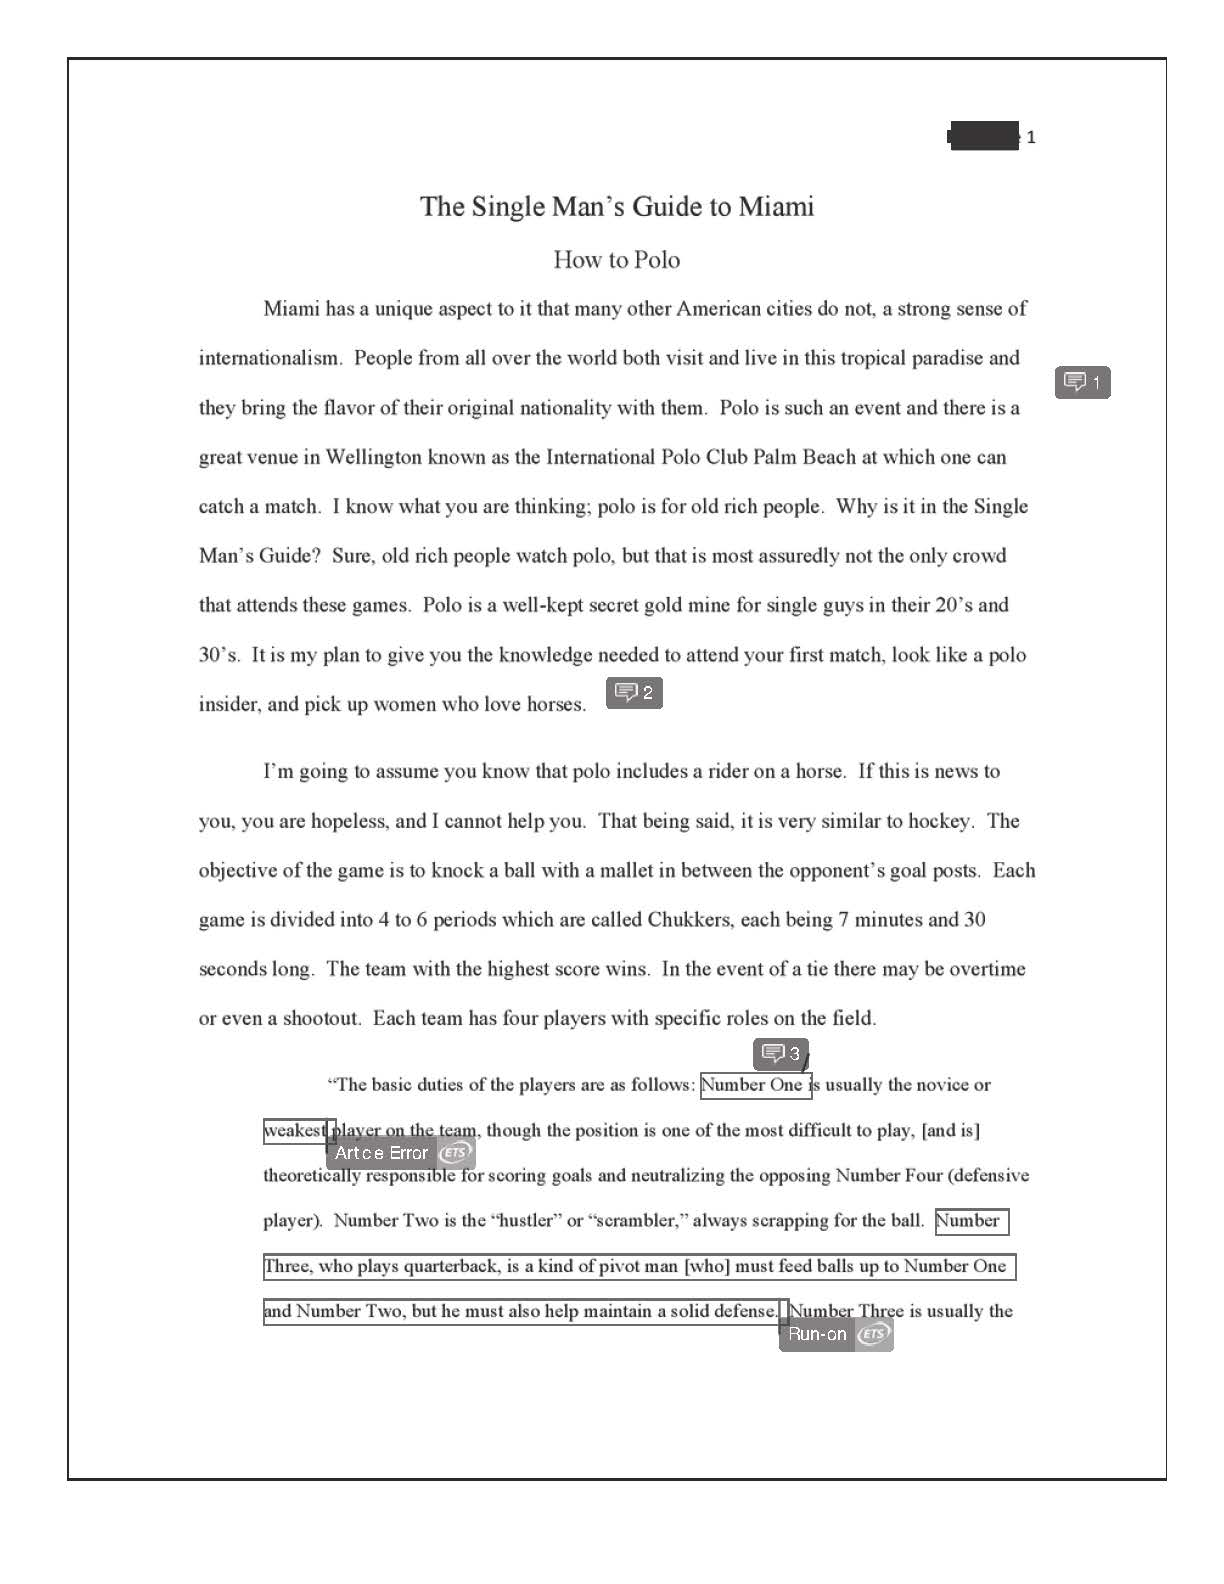 009 Informative Essay Final How To Polo Redacted Page Fresh Short Example Stirring Of About Love Pdf Full